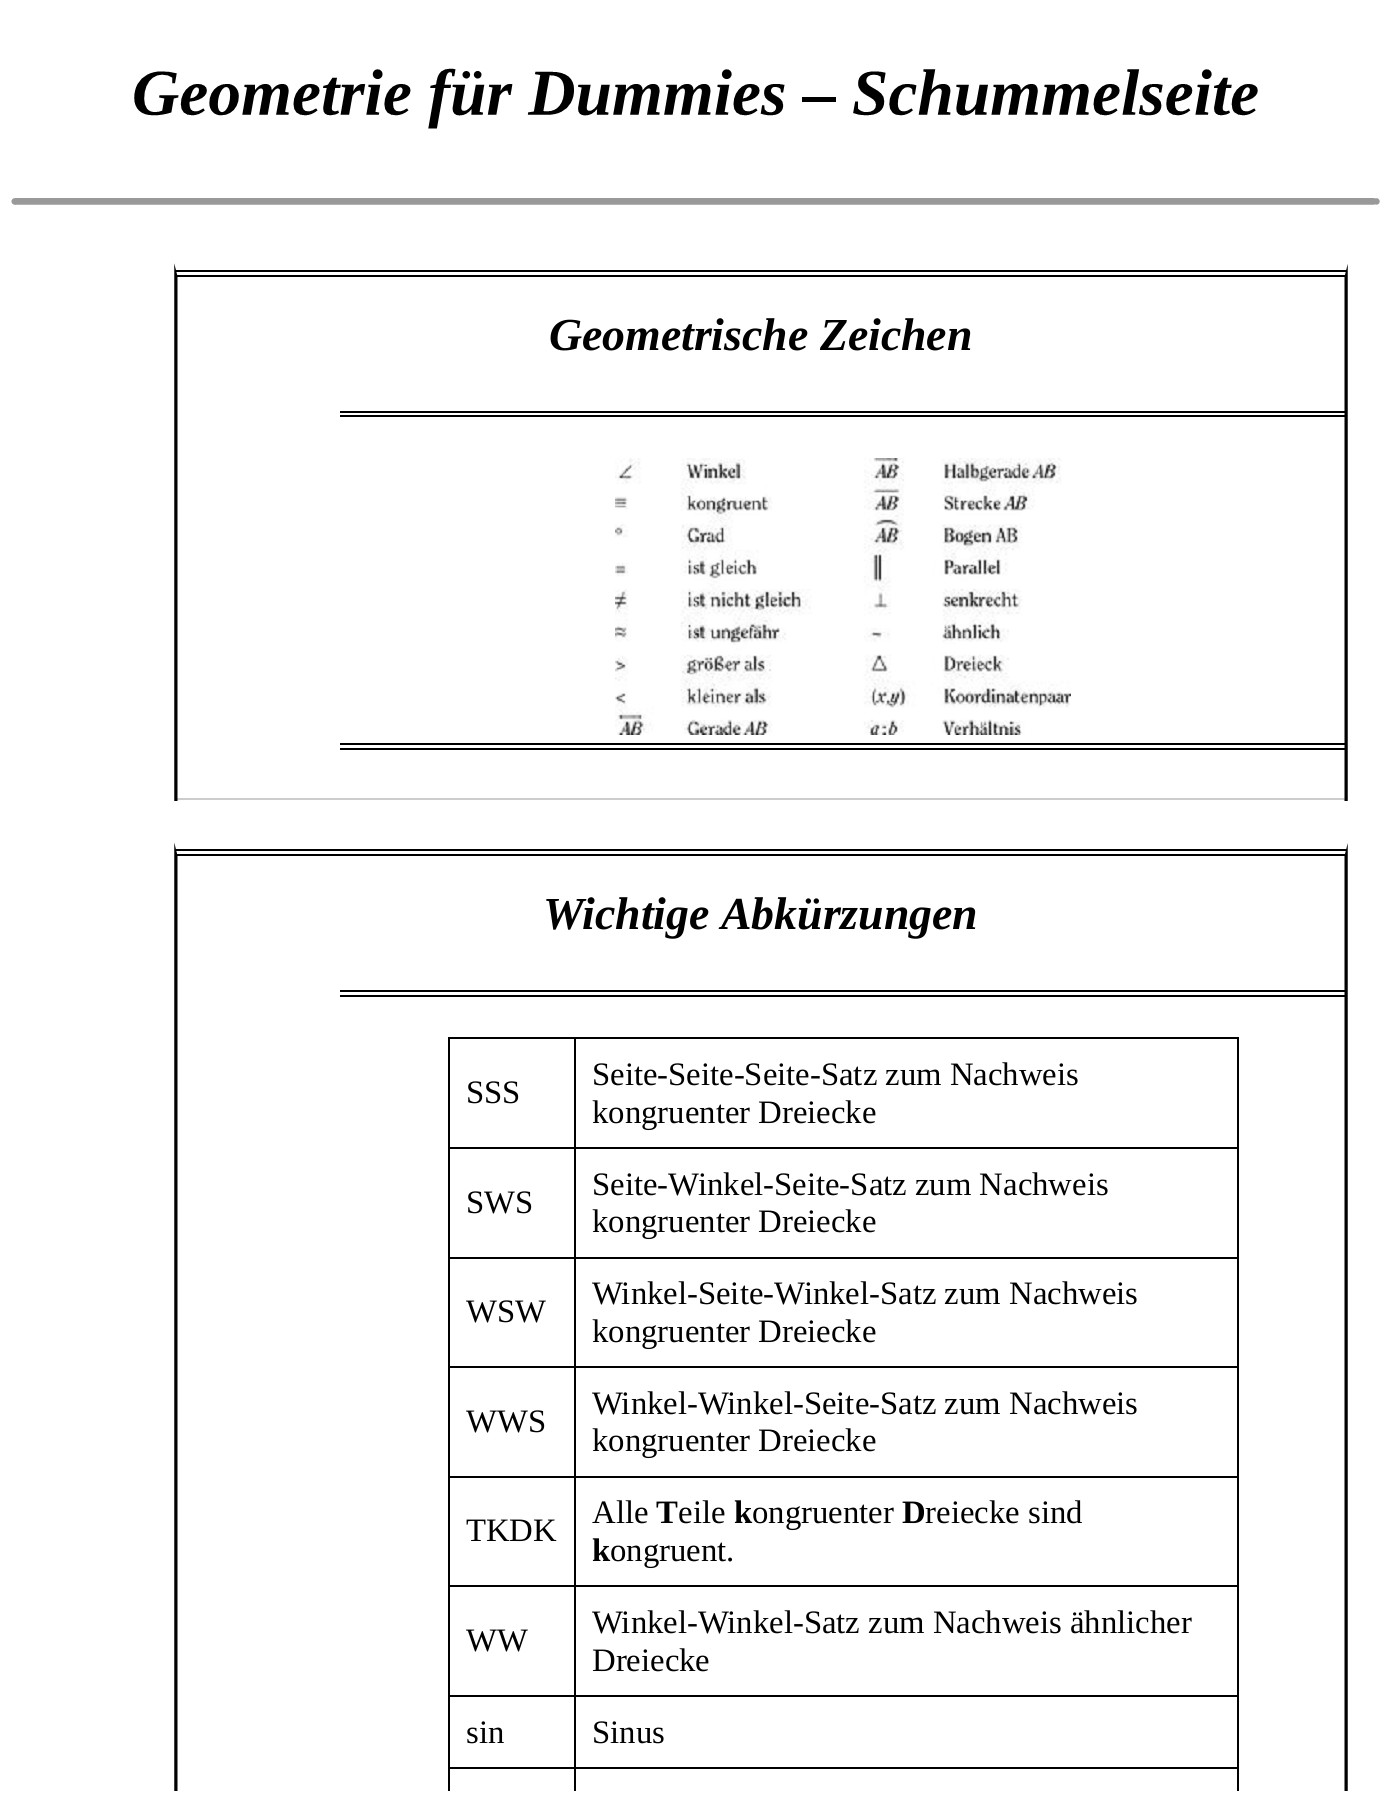 Rechten Winkel Messen Mit Zollstock Geometrie Fur Dummies Pages 201 250 Text Version Anyflip